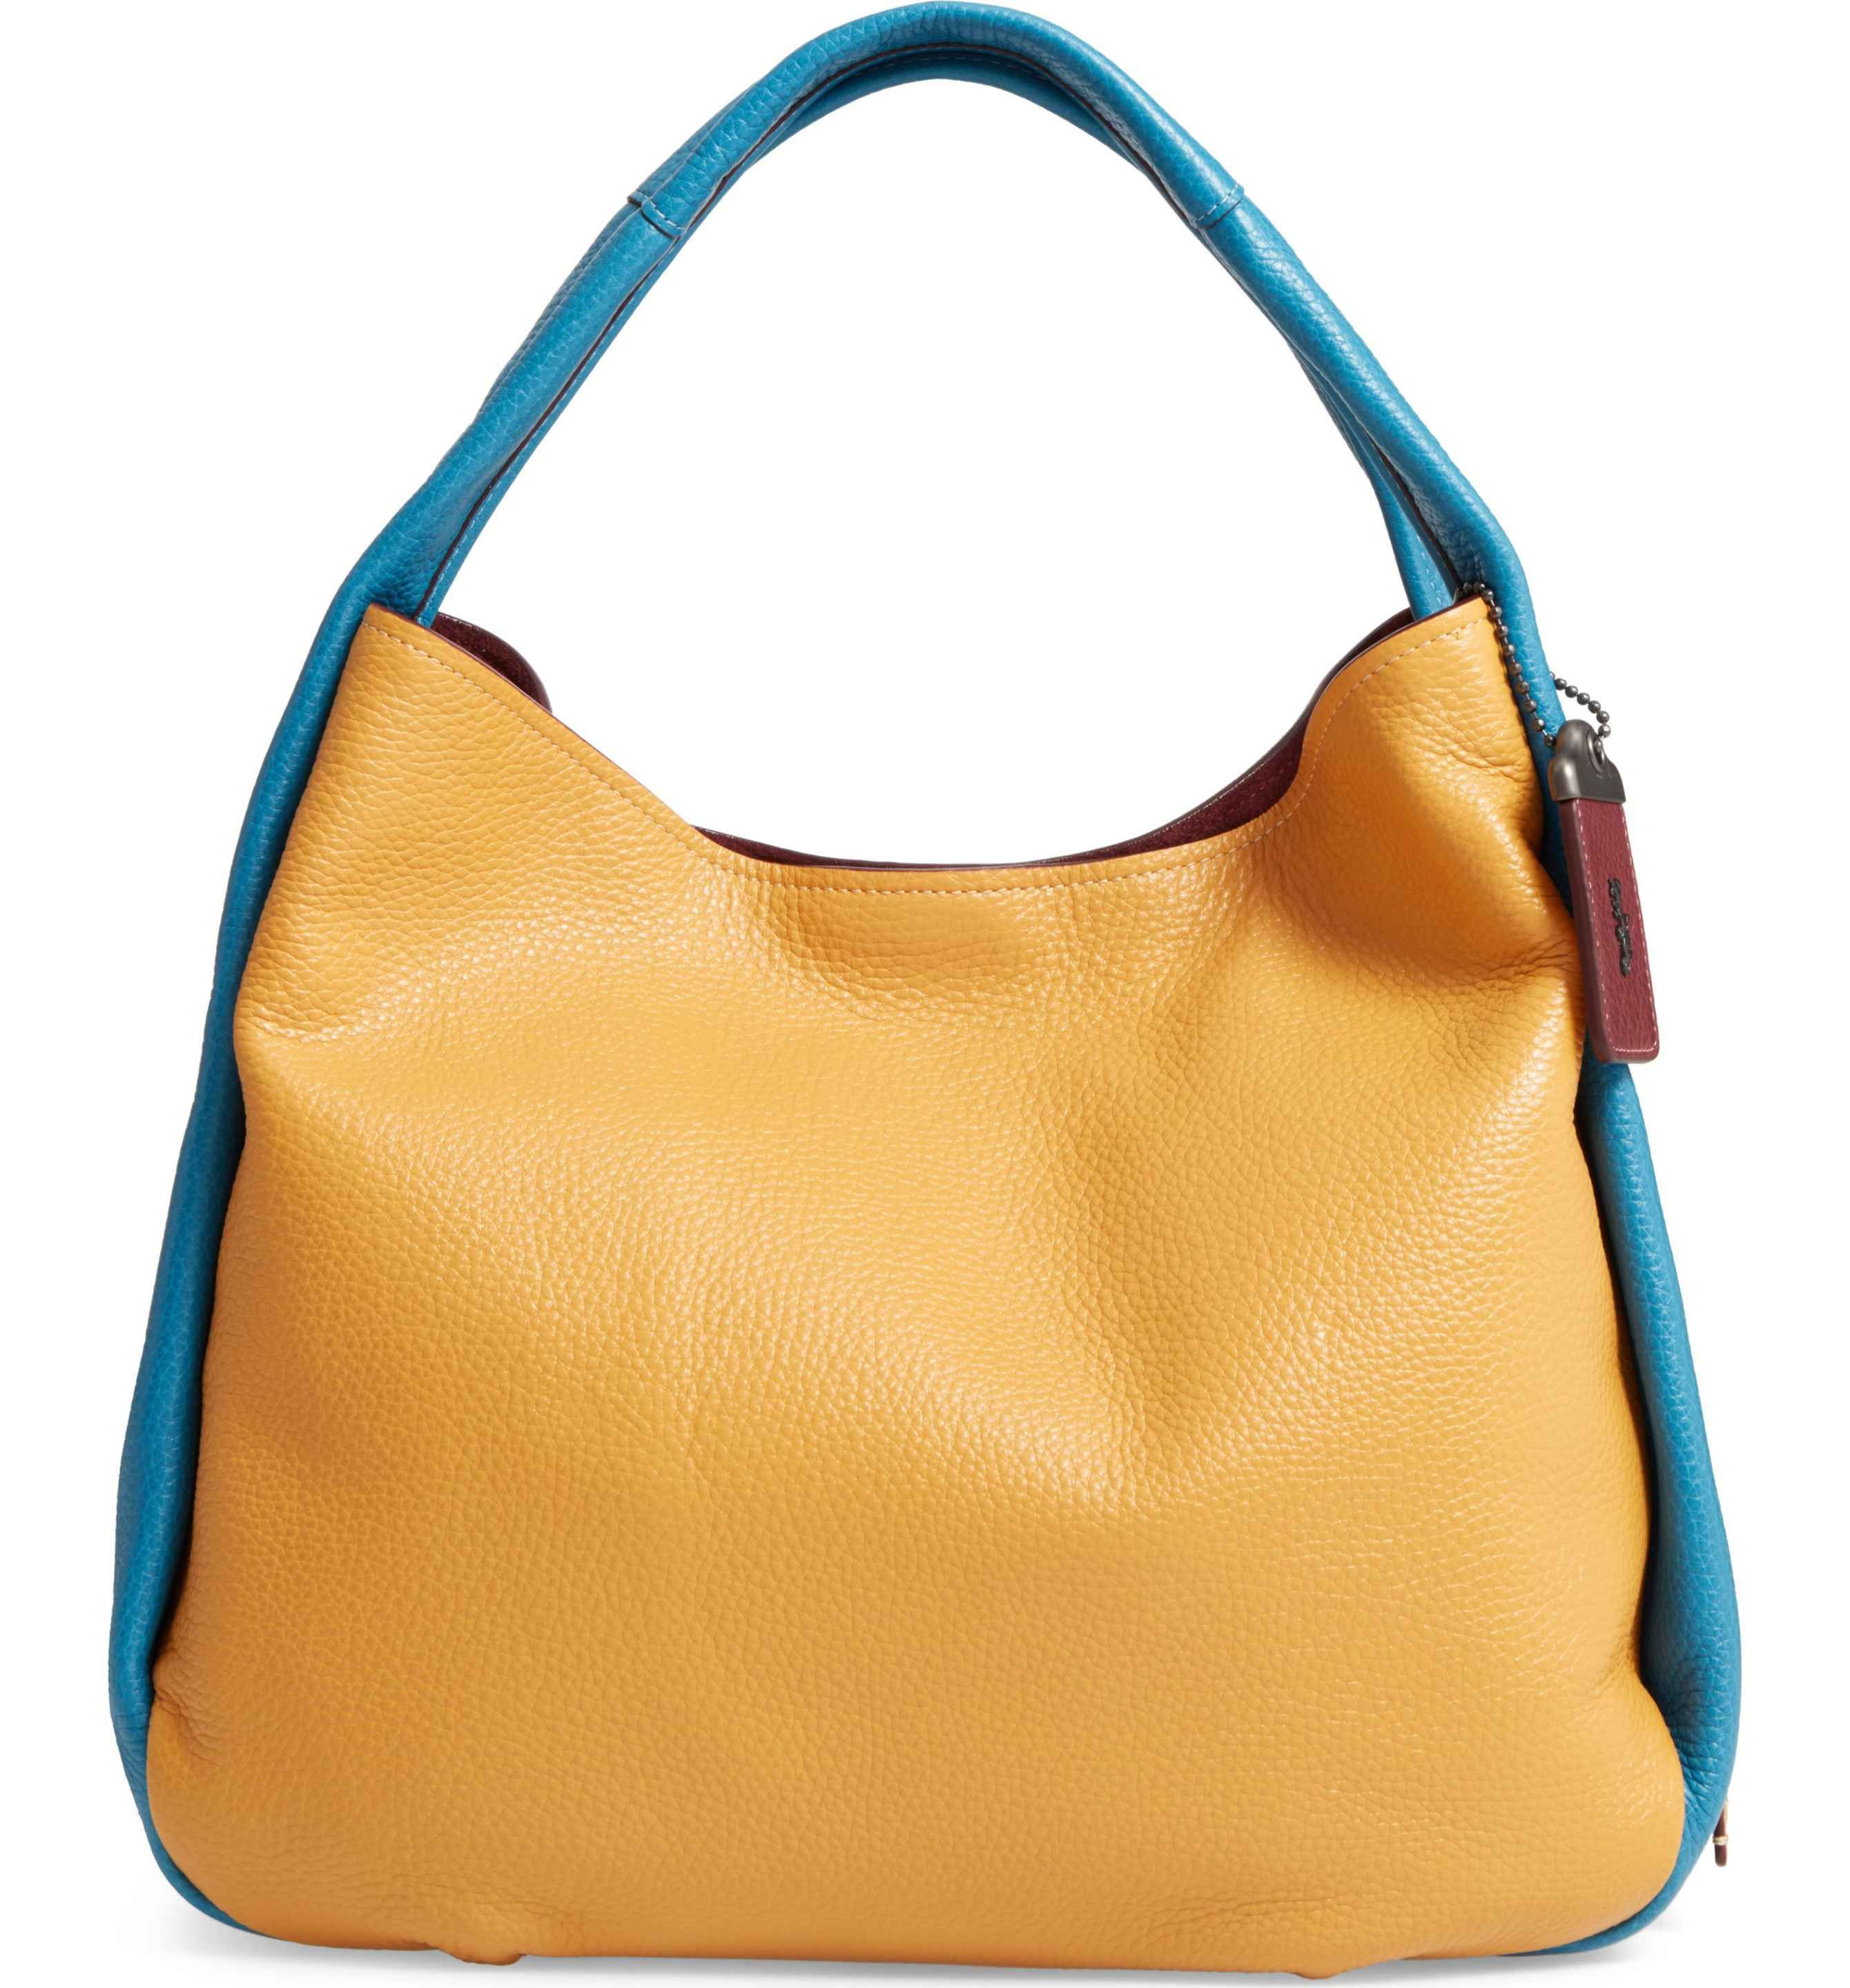 c6b637ff0fbba6 Main Image - COACH 1941 Colorblock Bandit Leather Hobo Bag | Purses ...